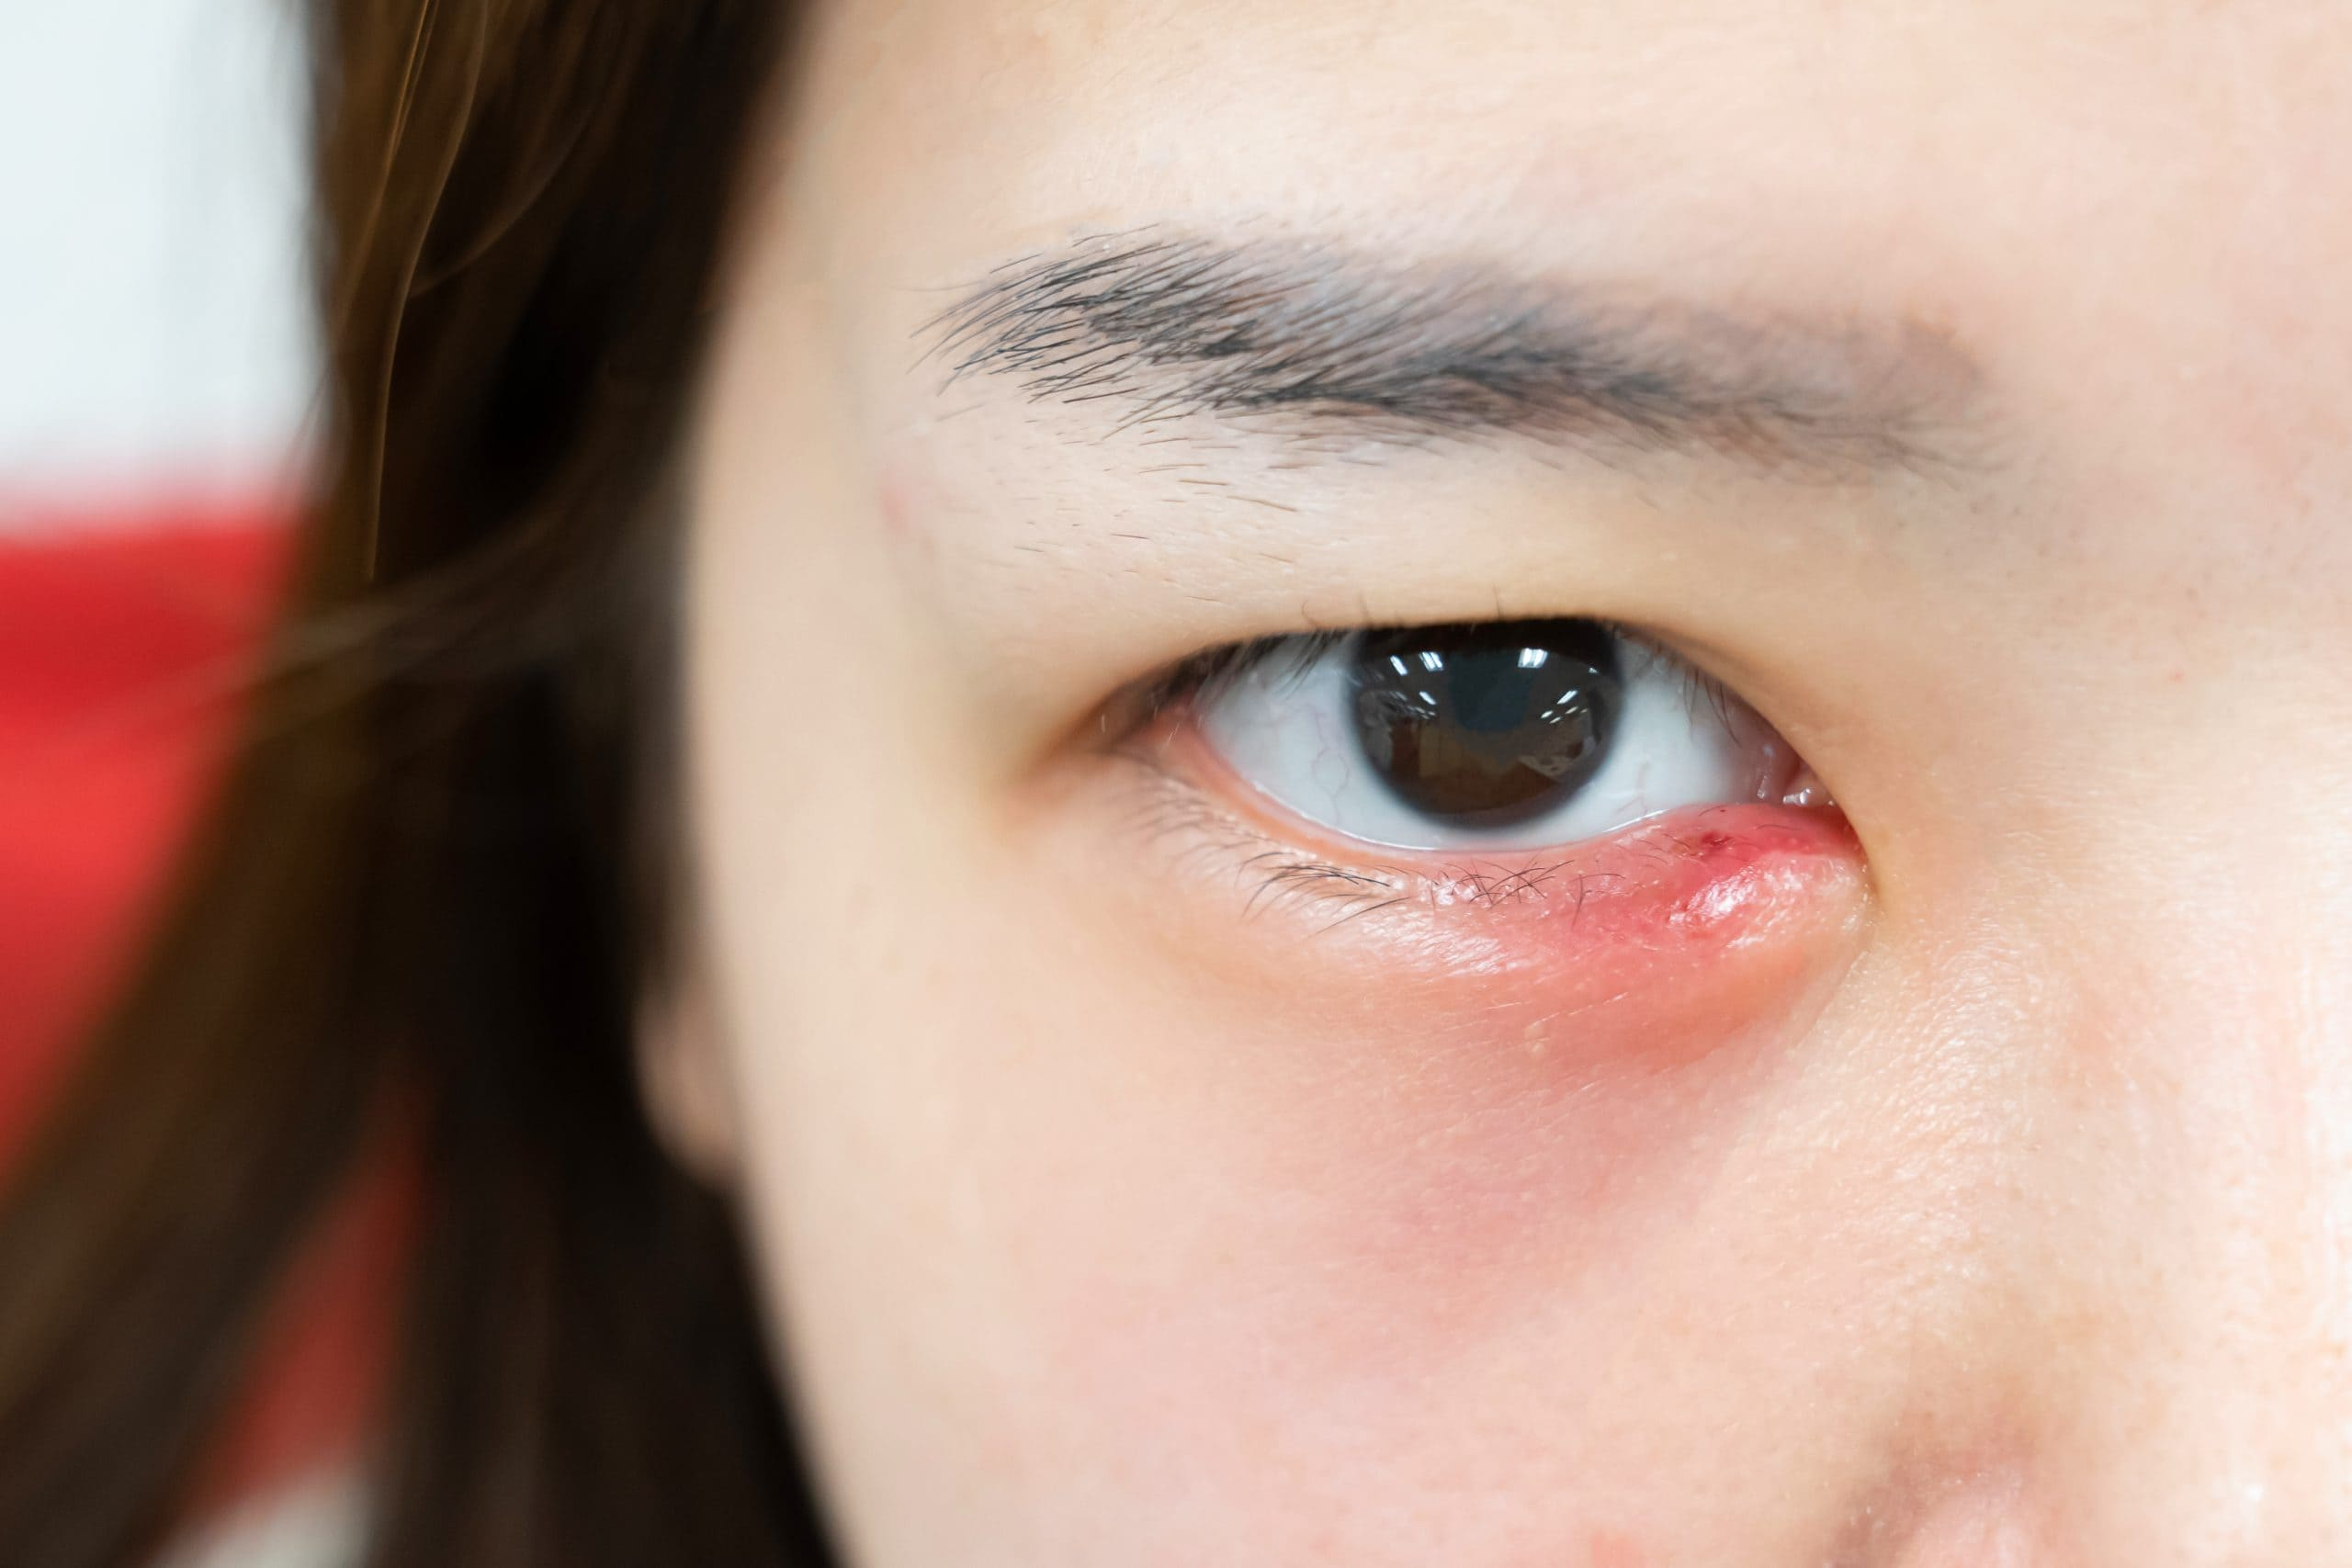 Infected eyes due to at home lash lift